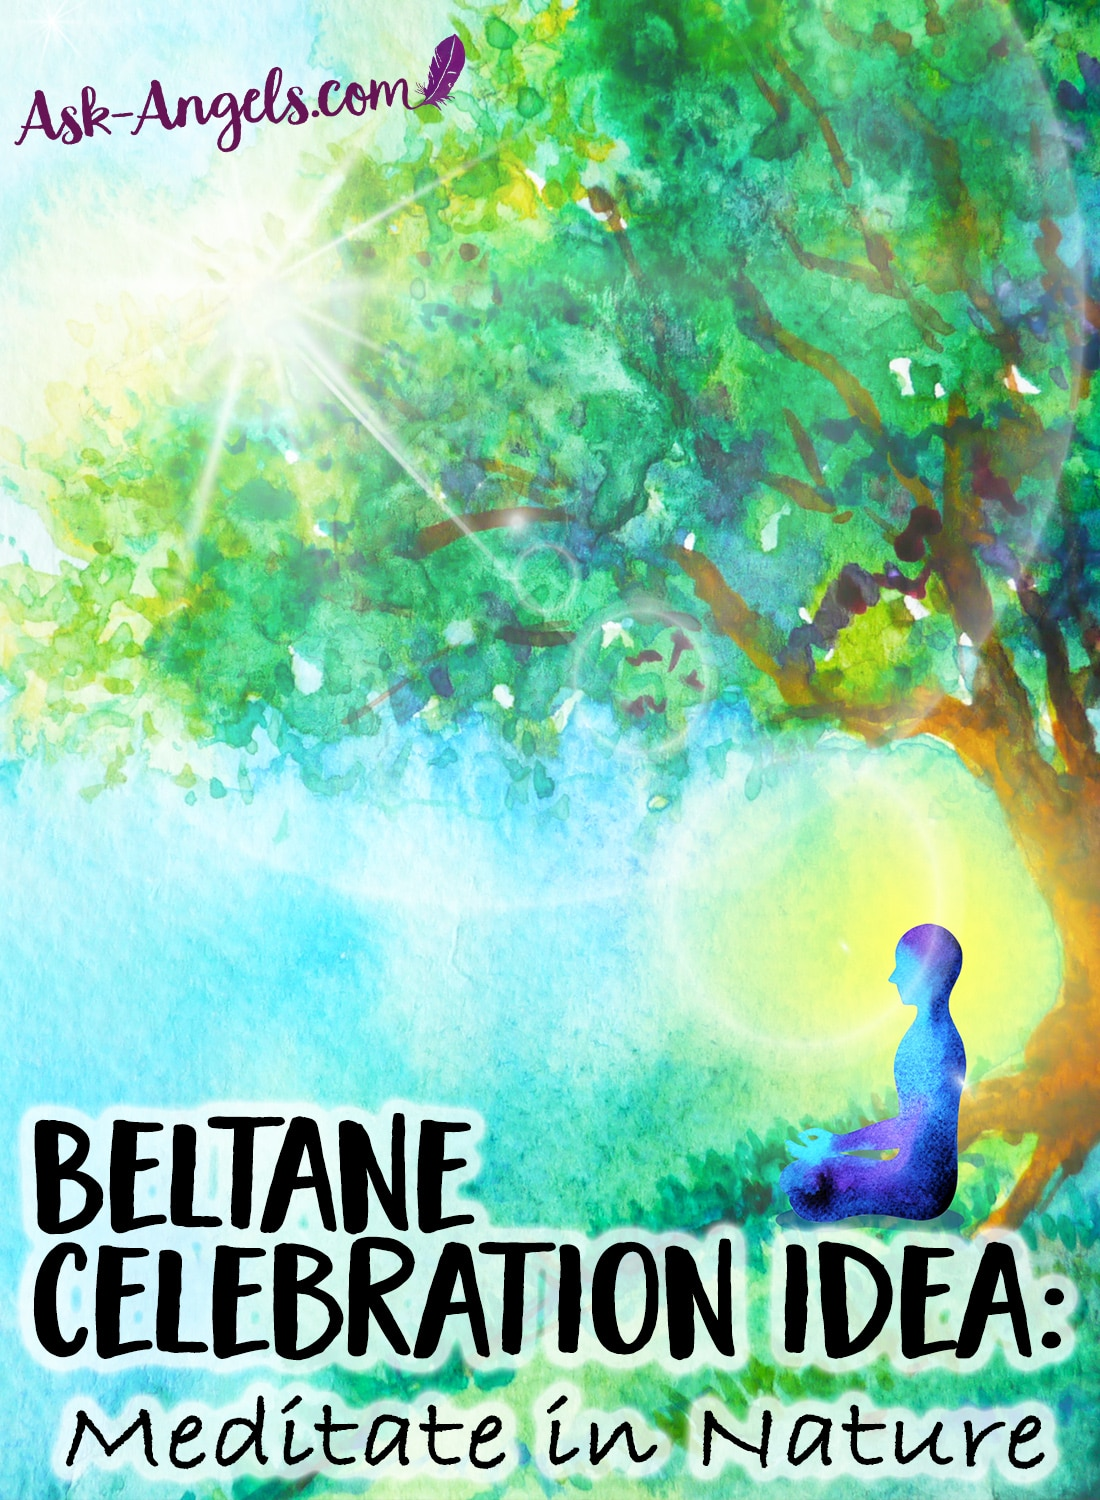 Beltane Celebration Idea - Meditate In Nature